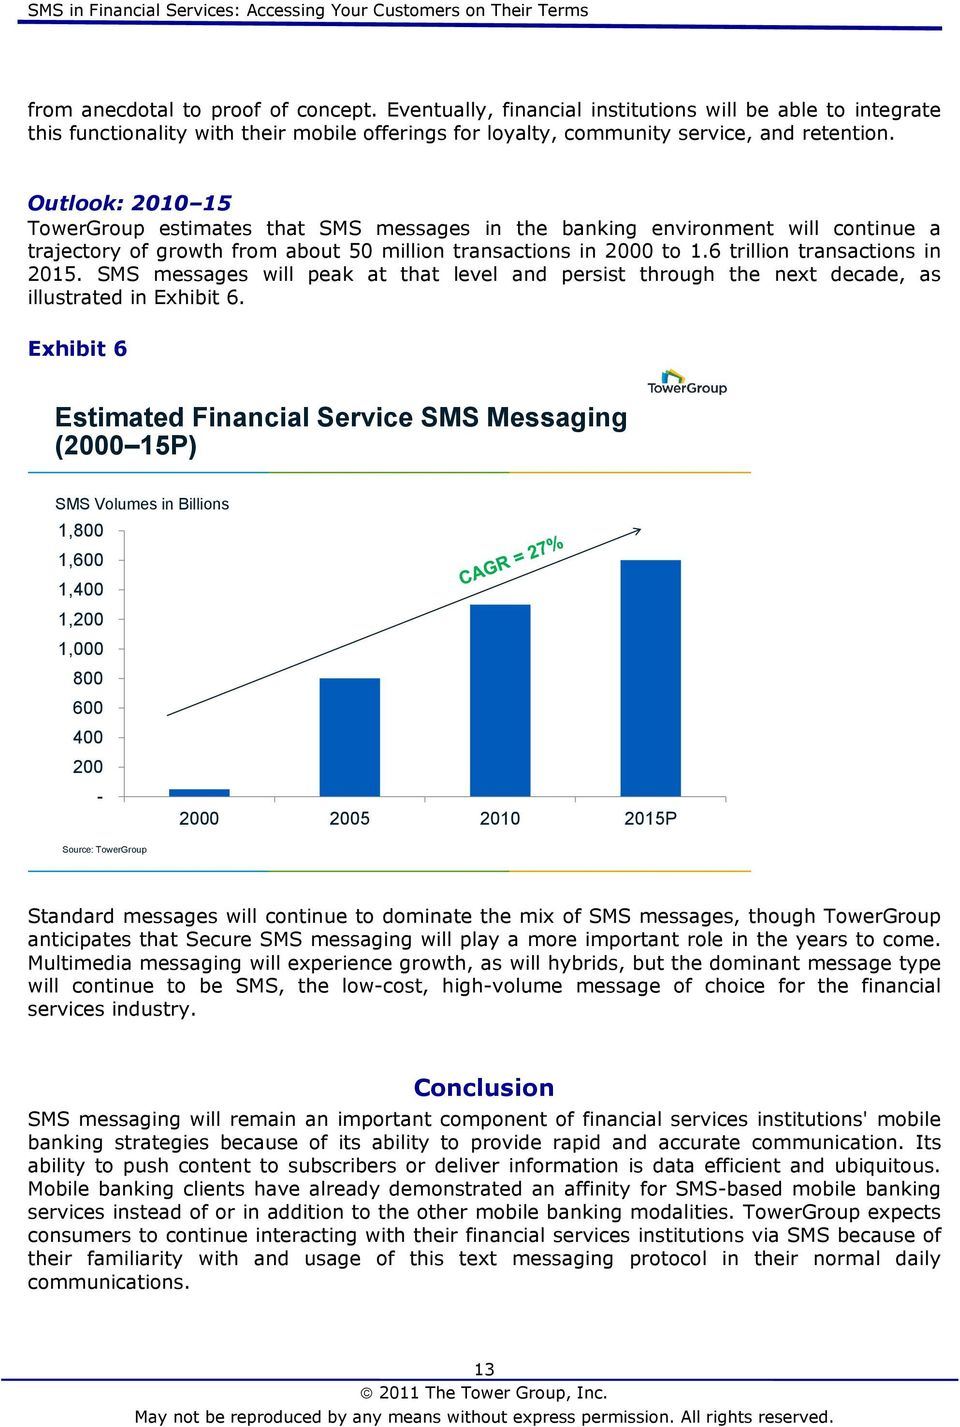 SMS messages will peak at that level and persist through the next decade, as illustrated in Exhibit 6.